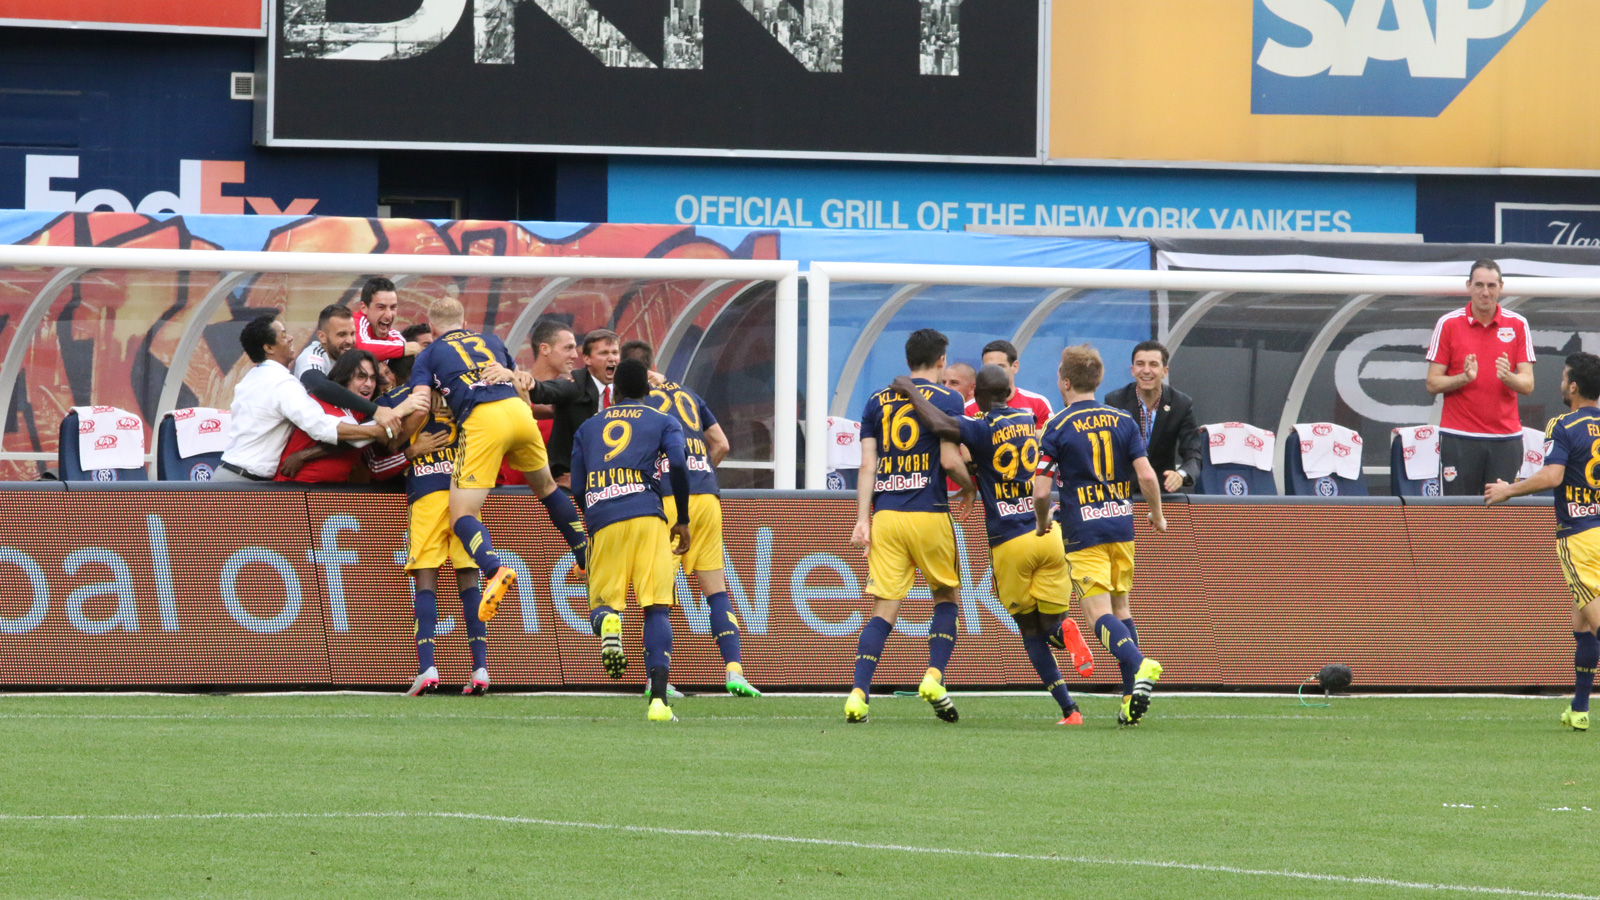 The New York Red Bulls run over to their bench to celebrate defender Chris Duvall's (25) first goal in Major League Soccer. Strikers Mike Grella (13) and Anatole Abang (9) and defender Matt Miazga (20) join coach Jesse Marsch in the post goal embrace.